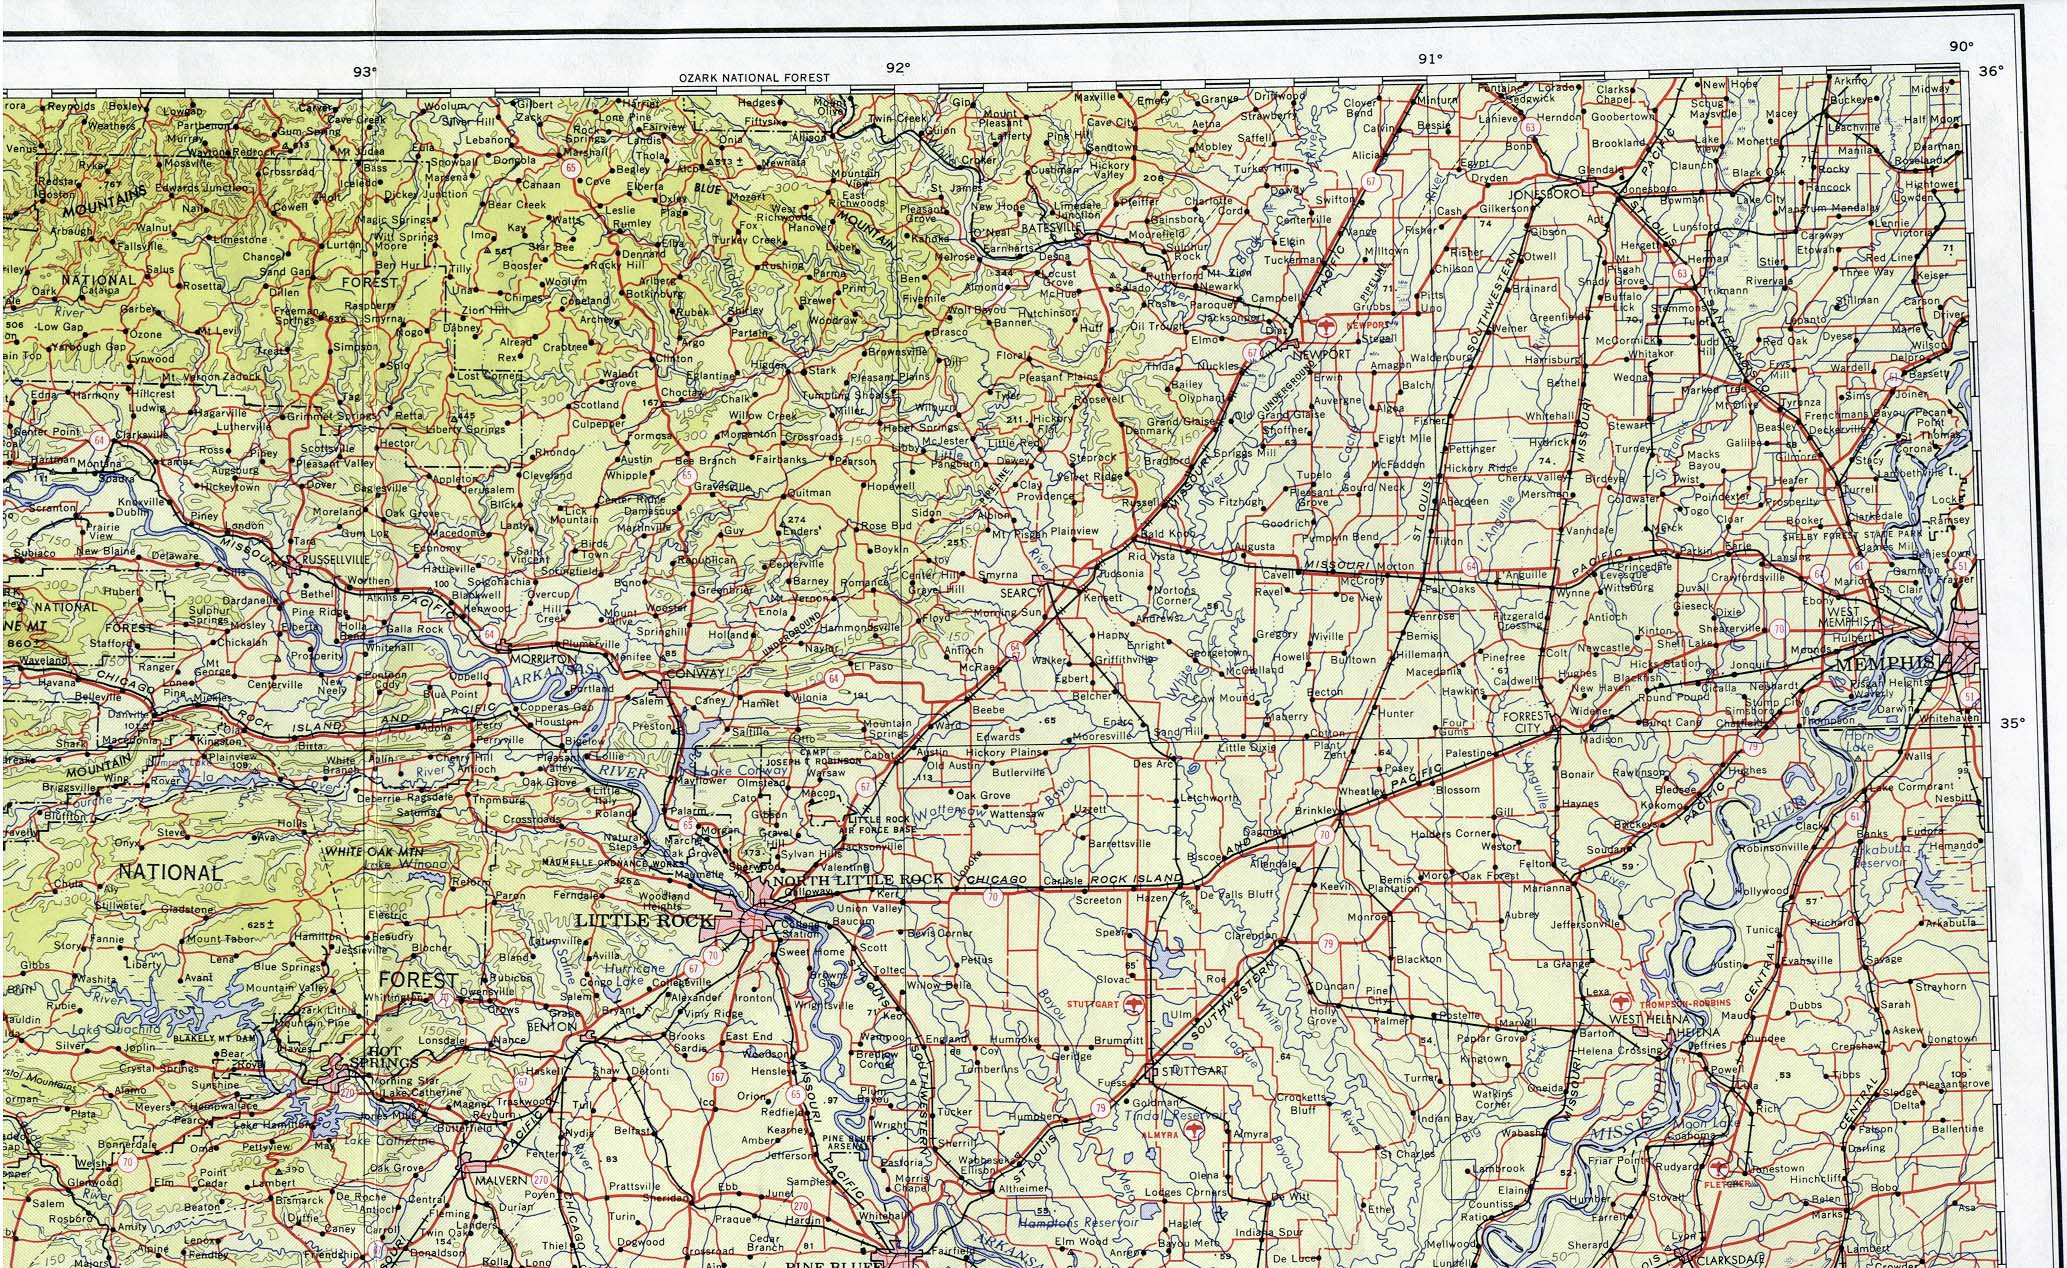 Arkansas Maps PerryCastañeda Map Collection UT Library Online - Arkansas on a us map